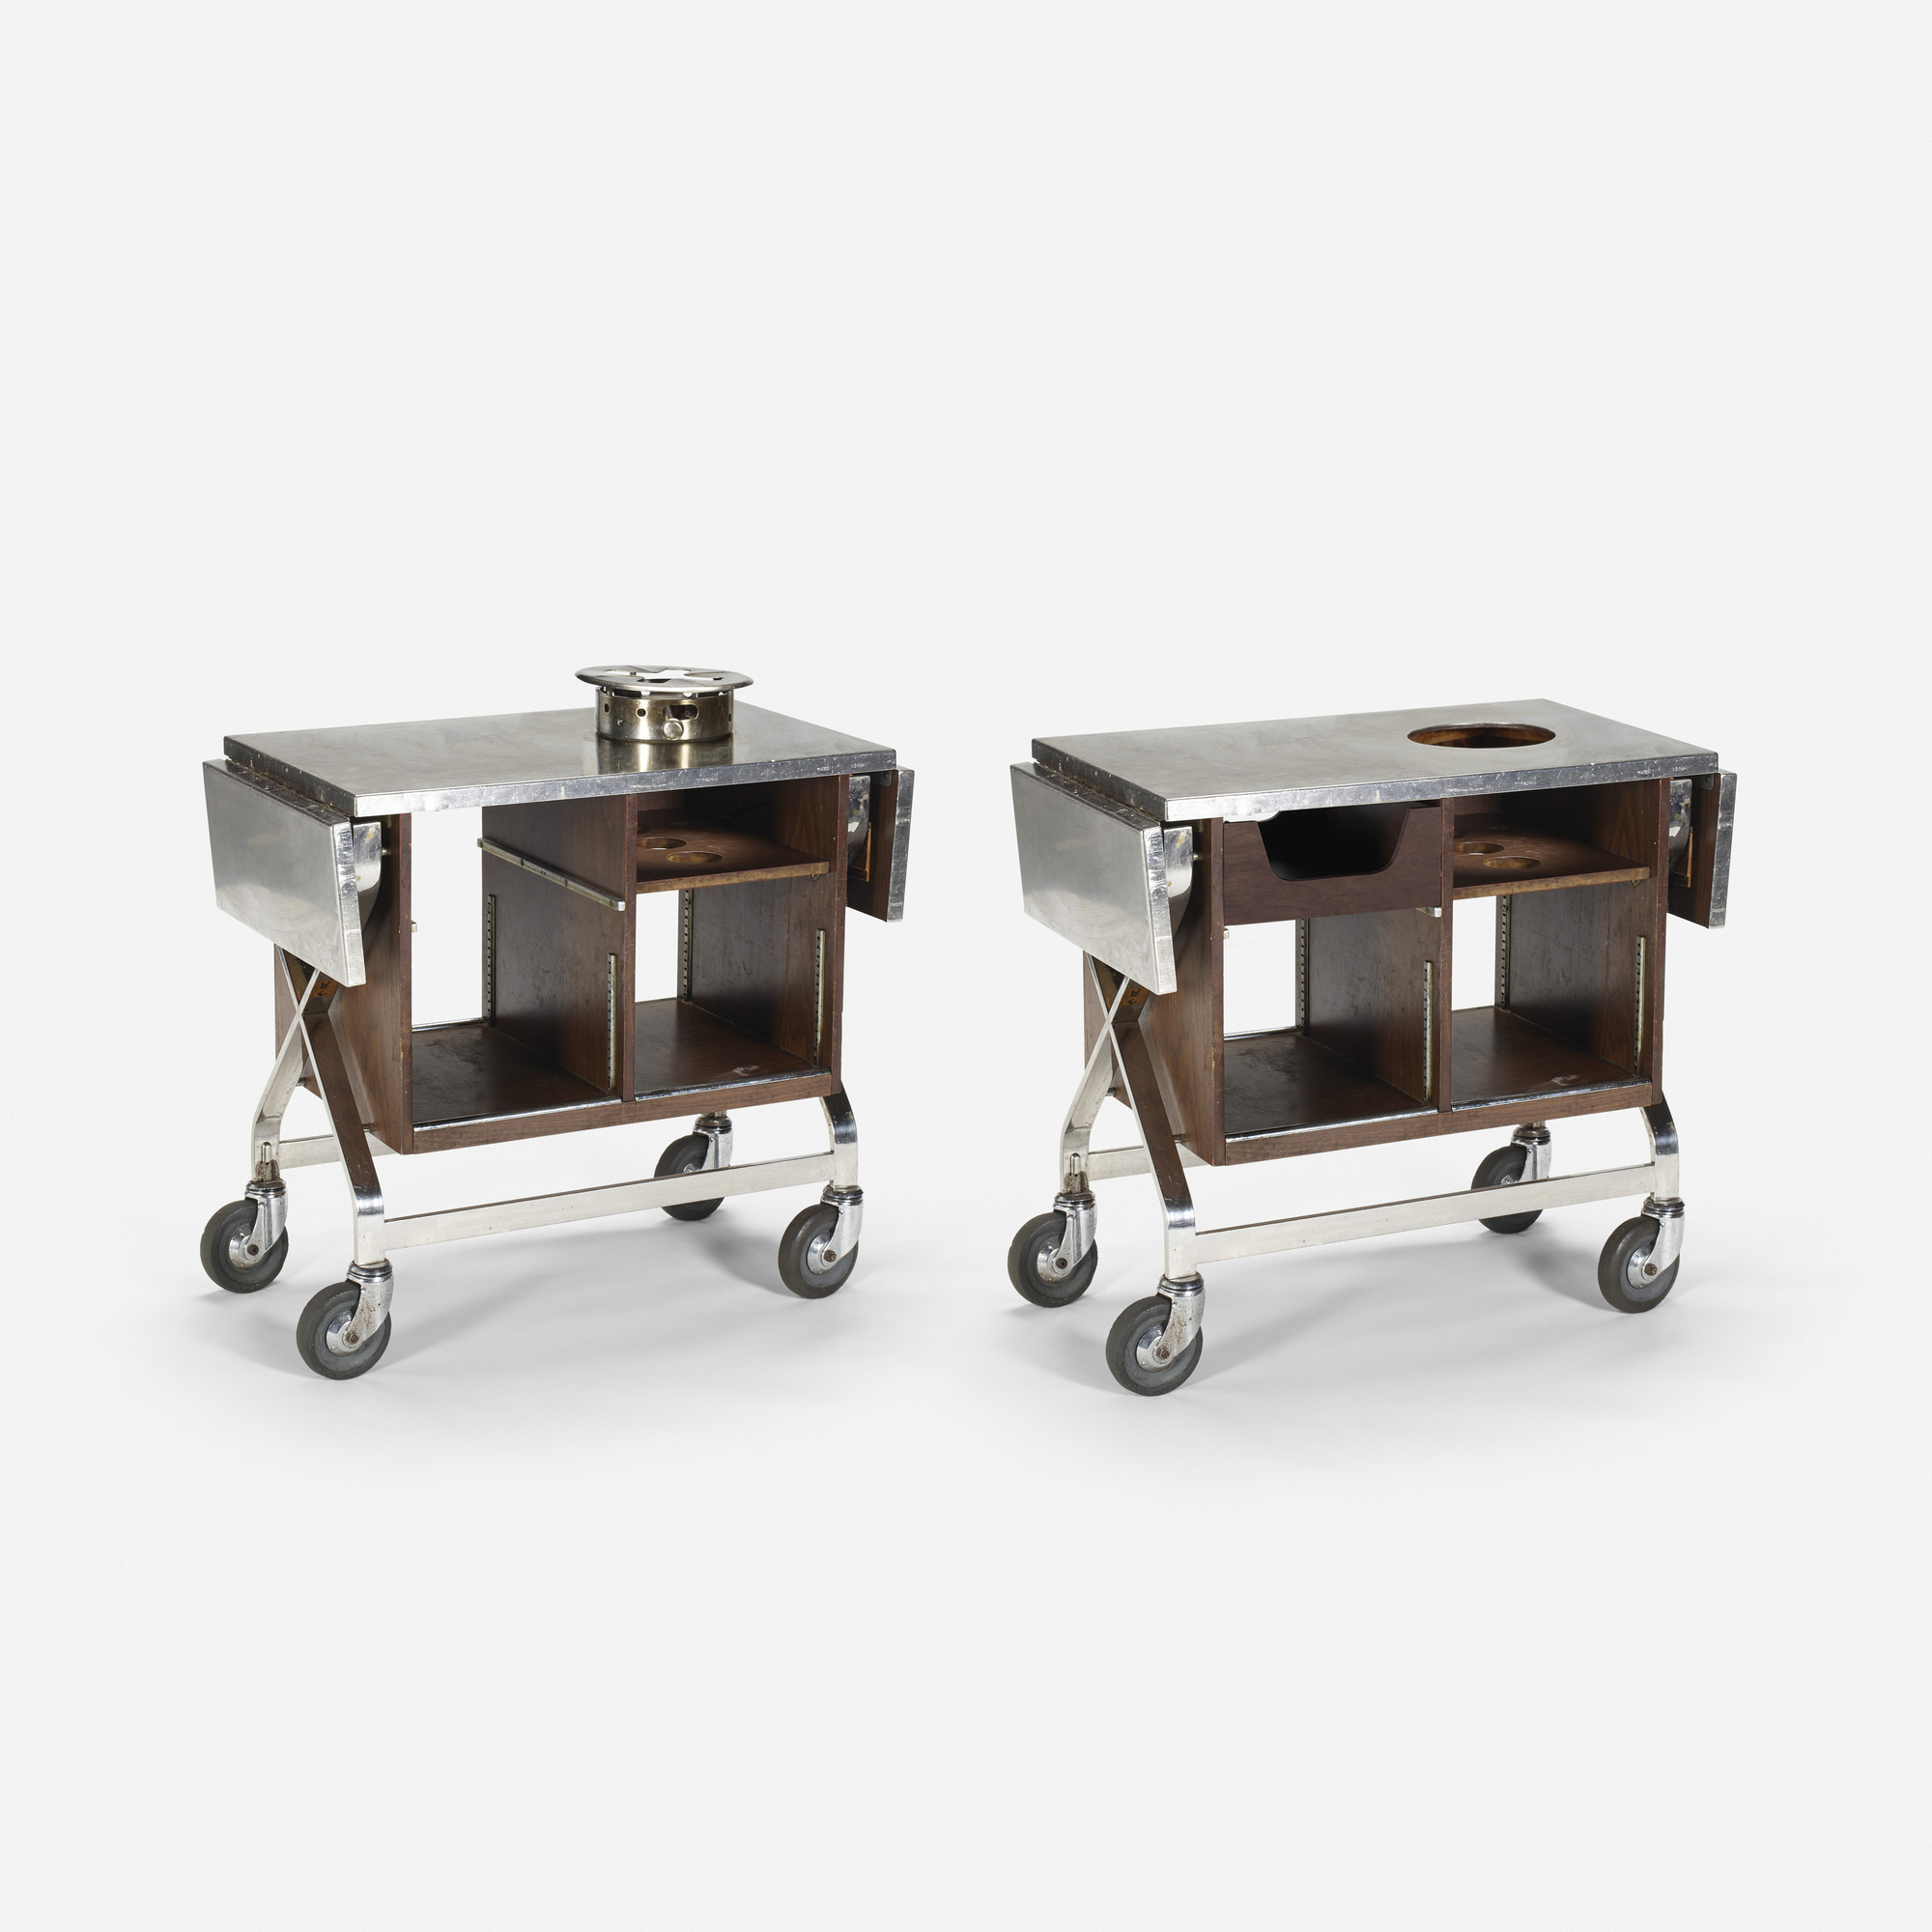 282: Garth and Ada Louise Huxtable / Serving carts from The Four Seasons, pair (1 of 1)